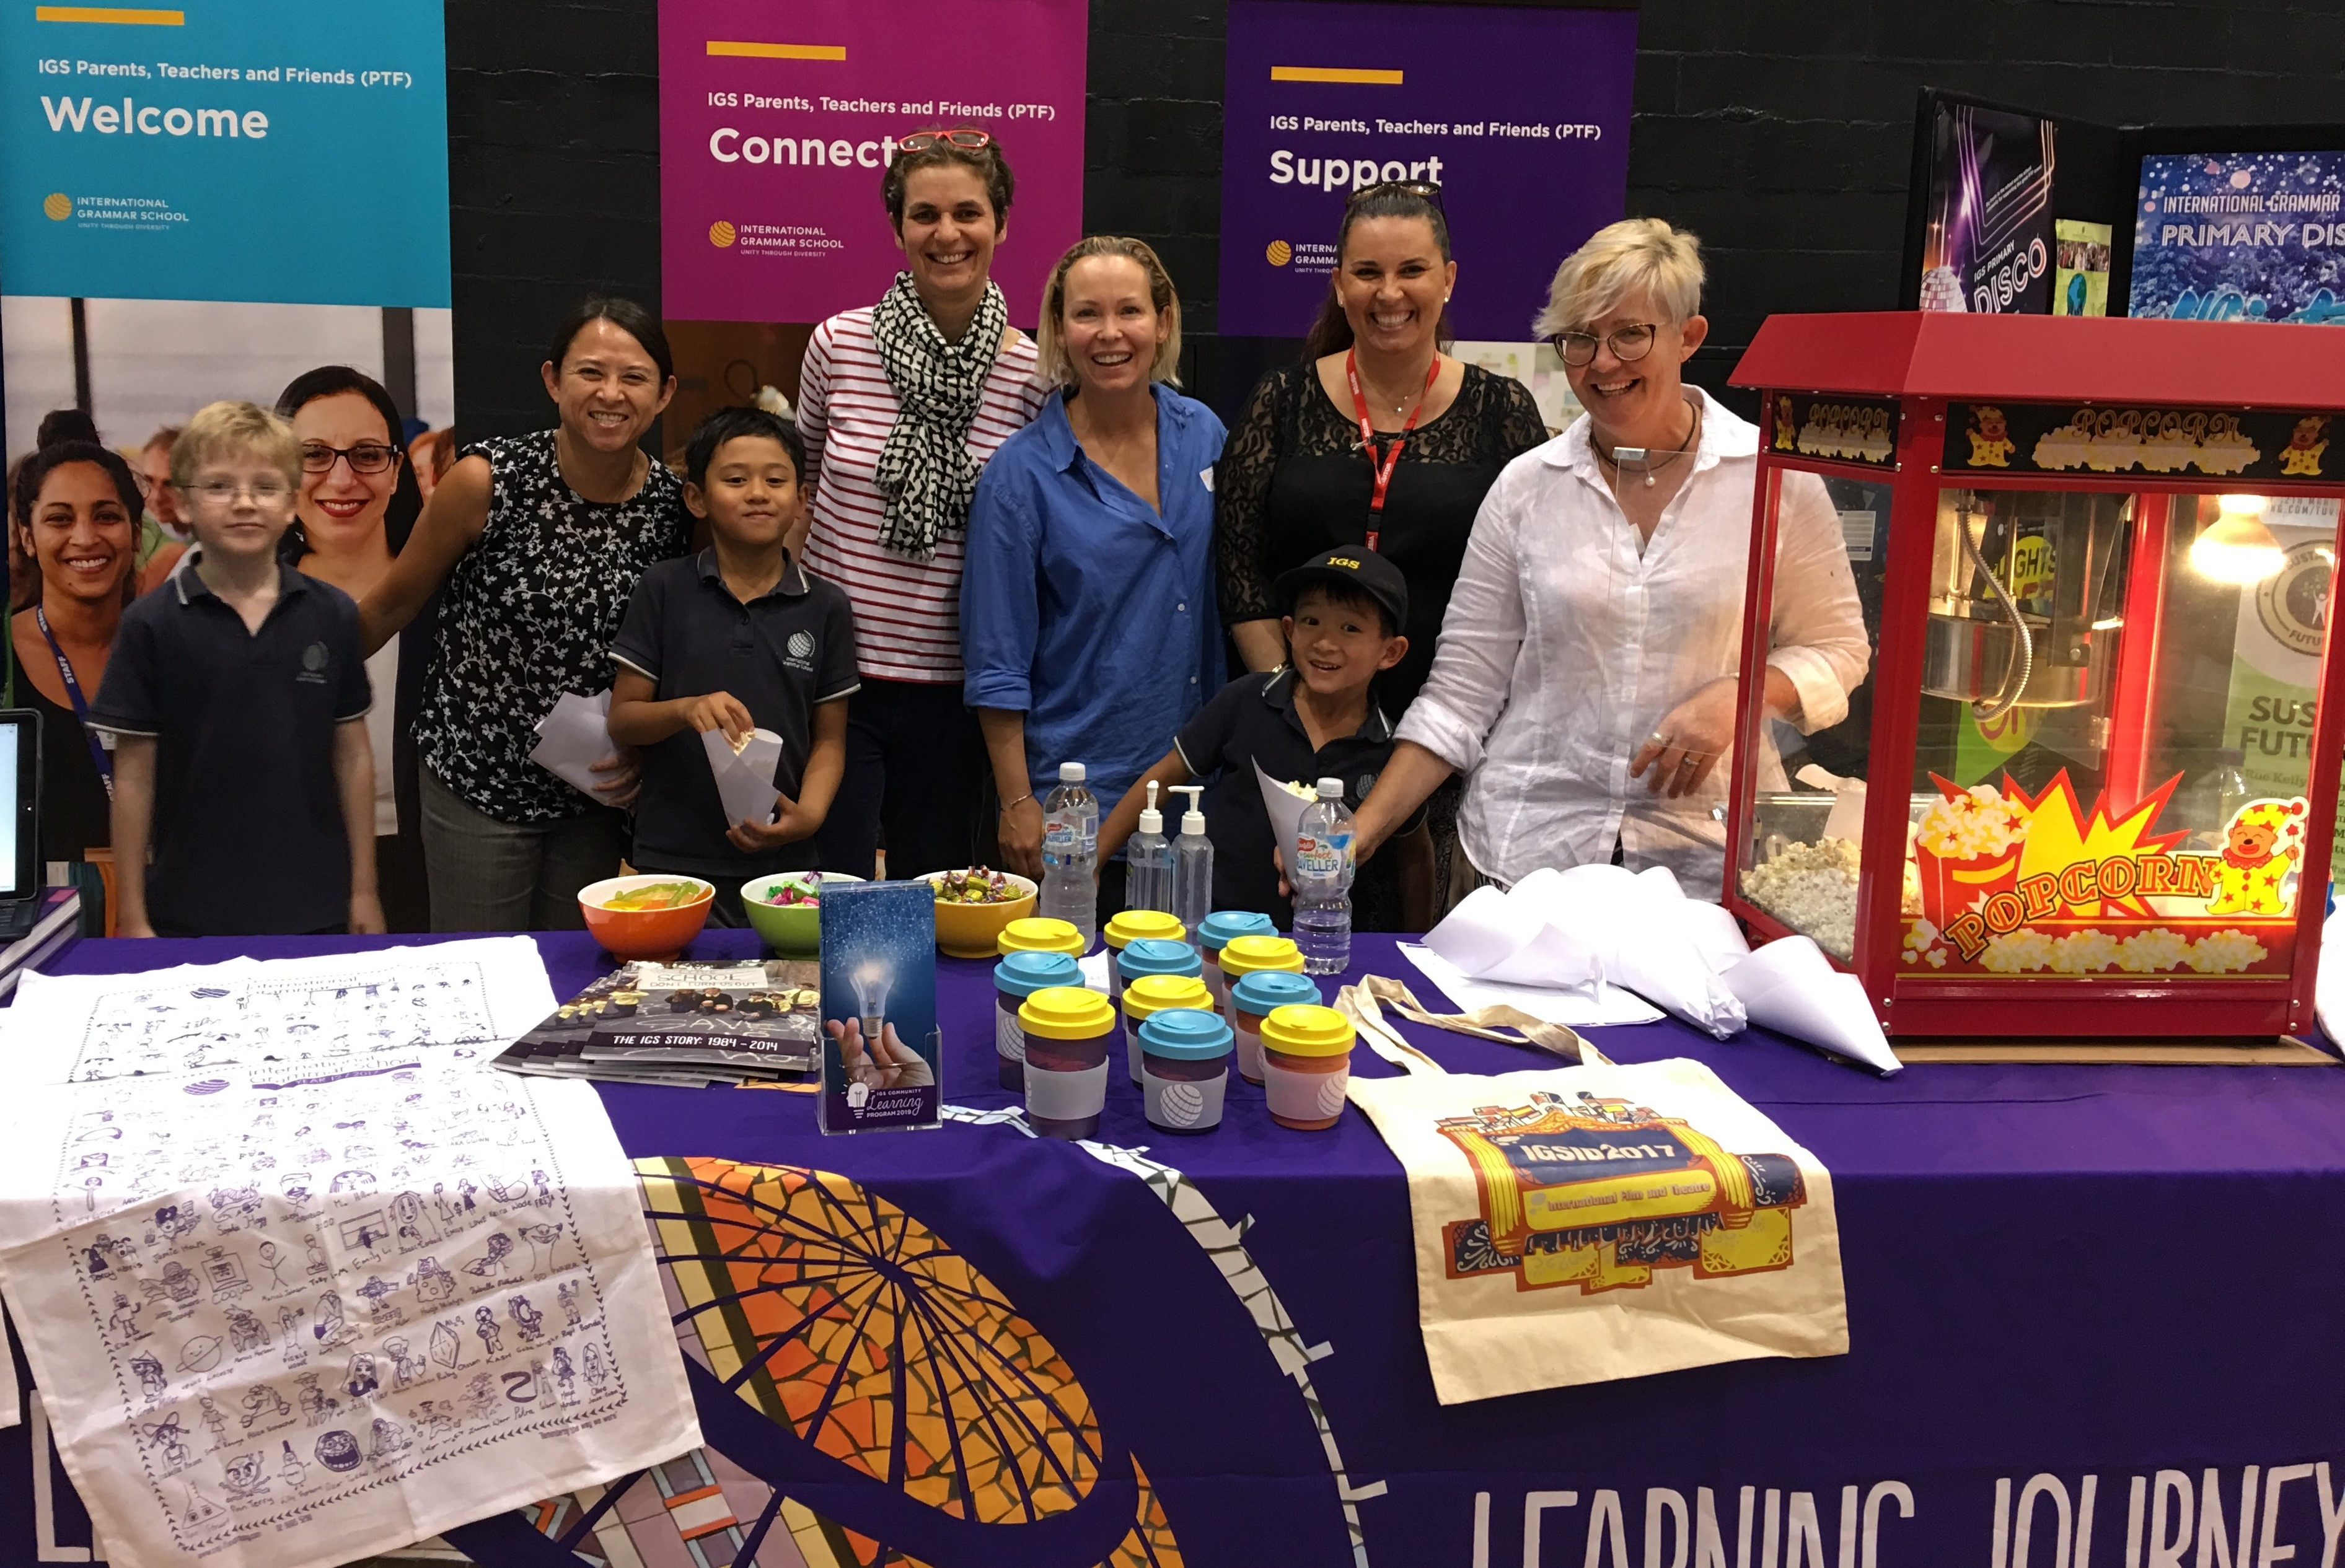 PTF welcomes parents at IGS Open Night